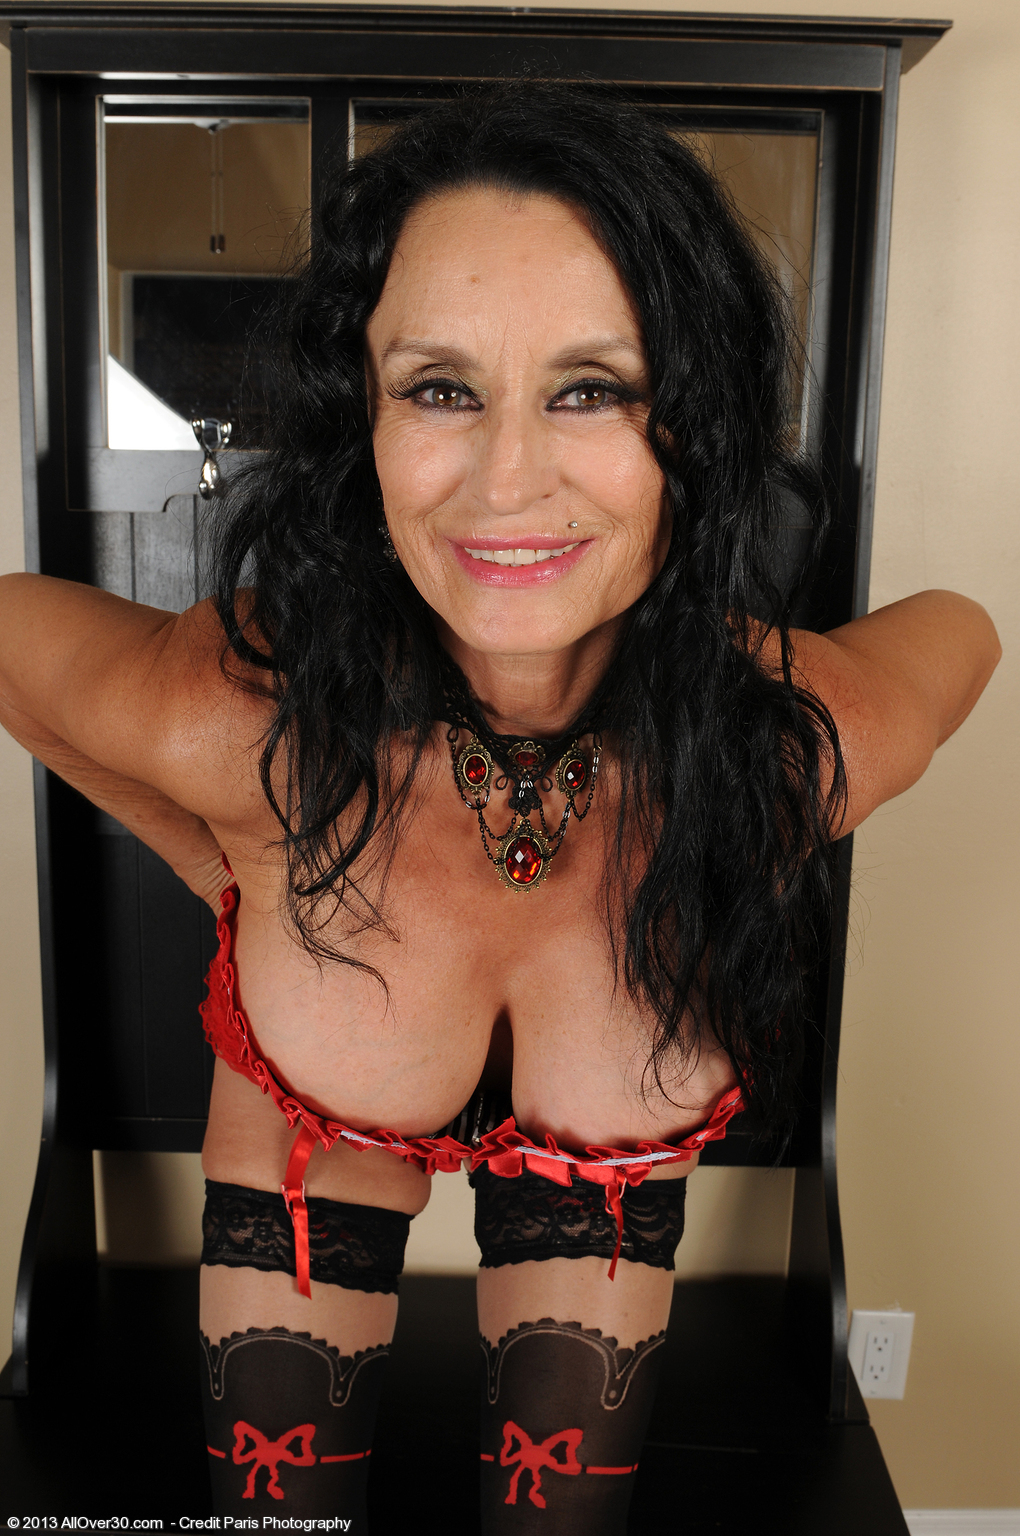 Fucking all over 30 red lingerie granny couine vite